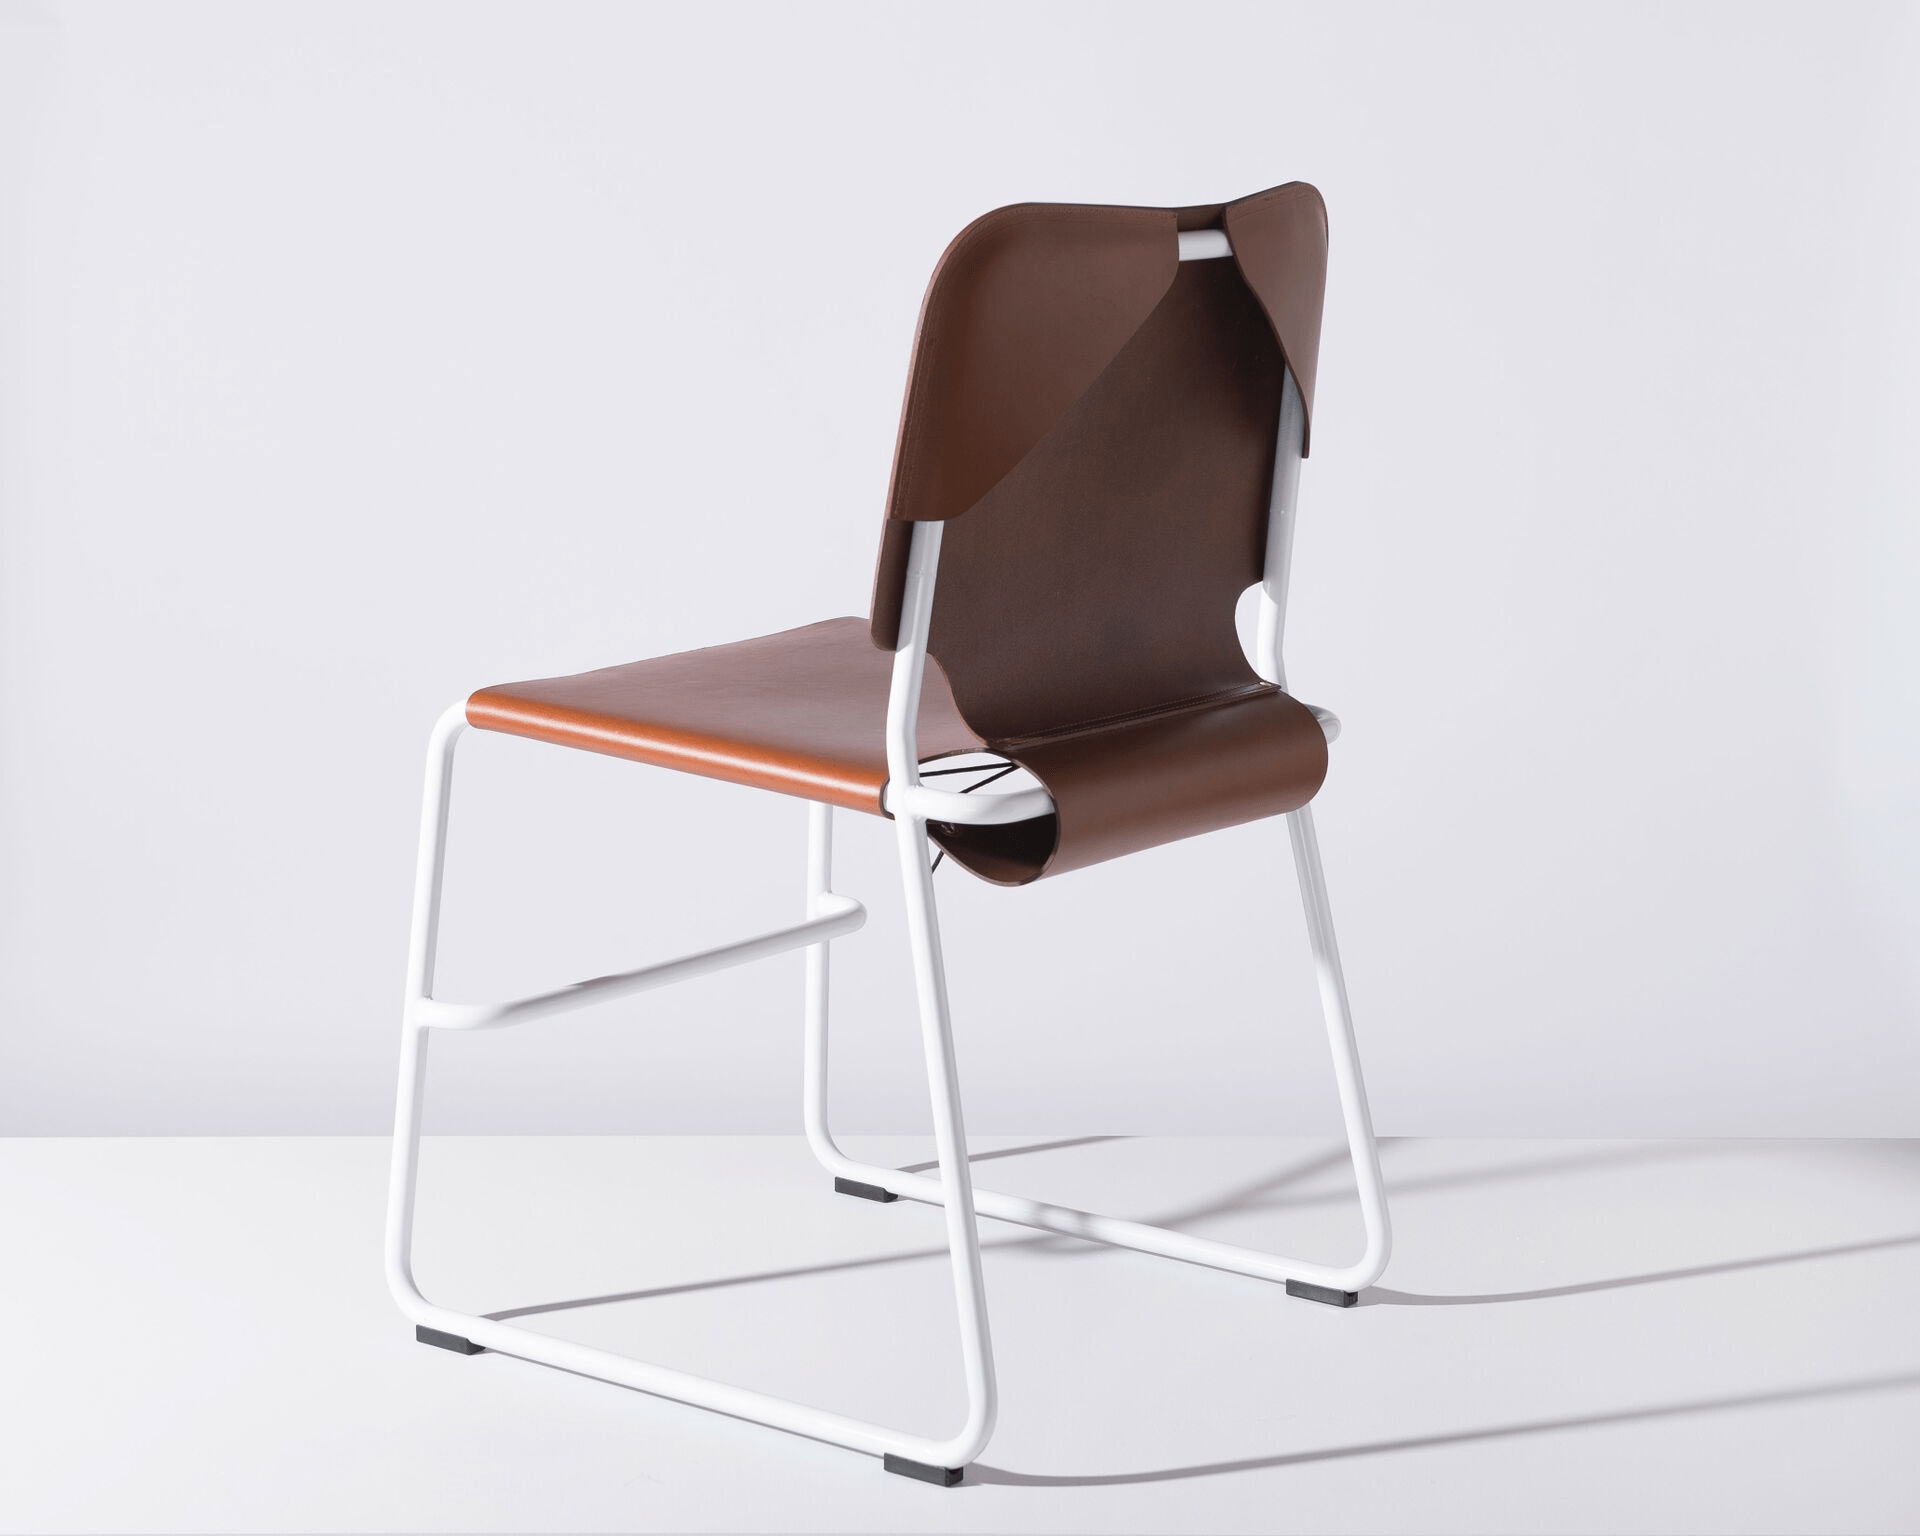 Sustainably designed furniture, seats and chairs